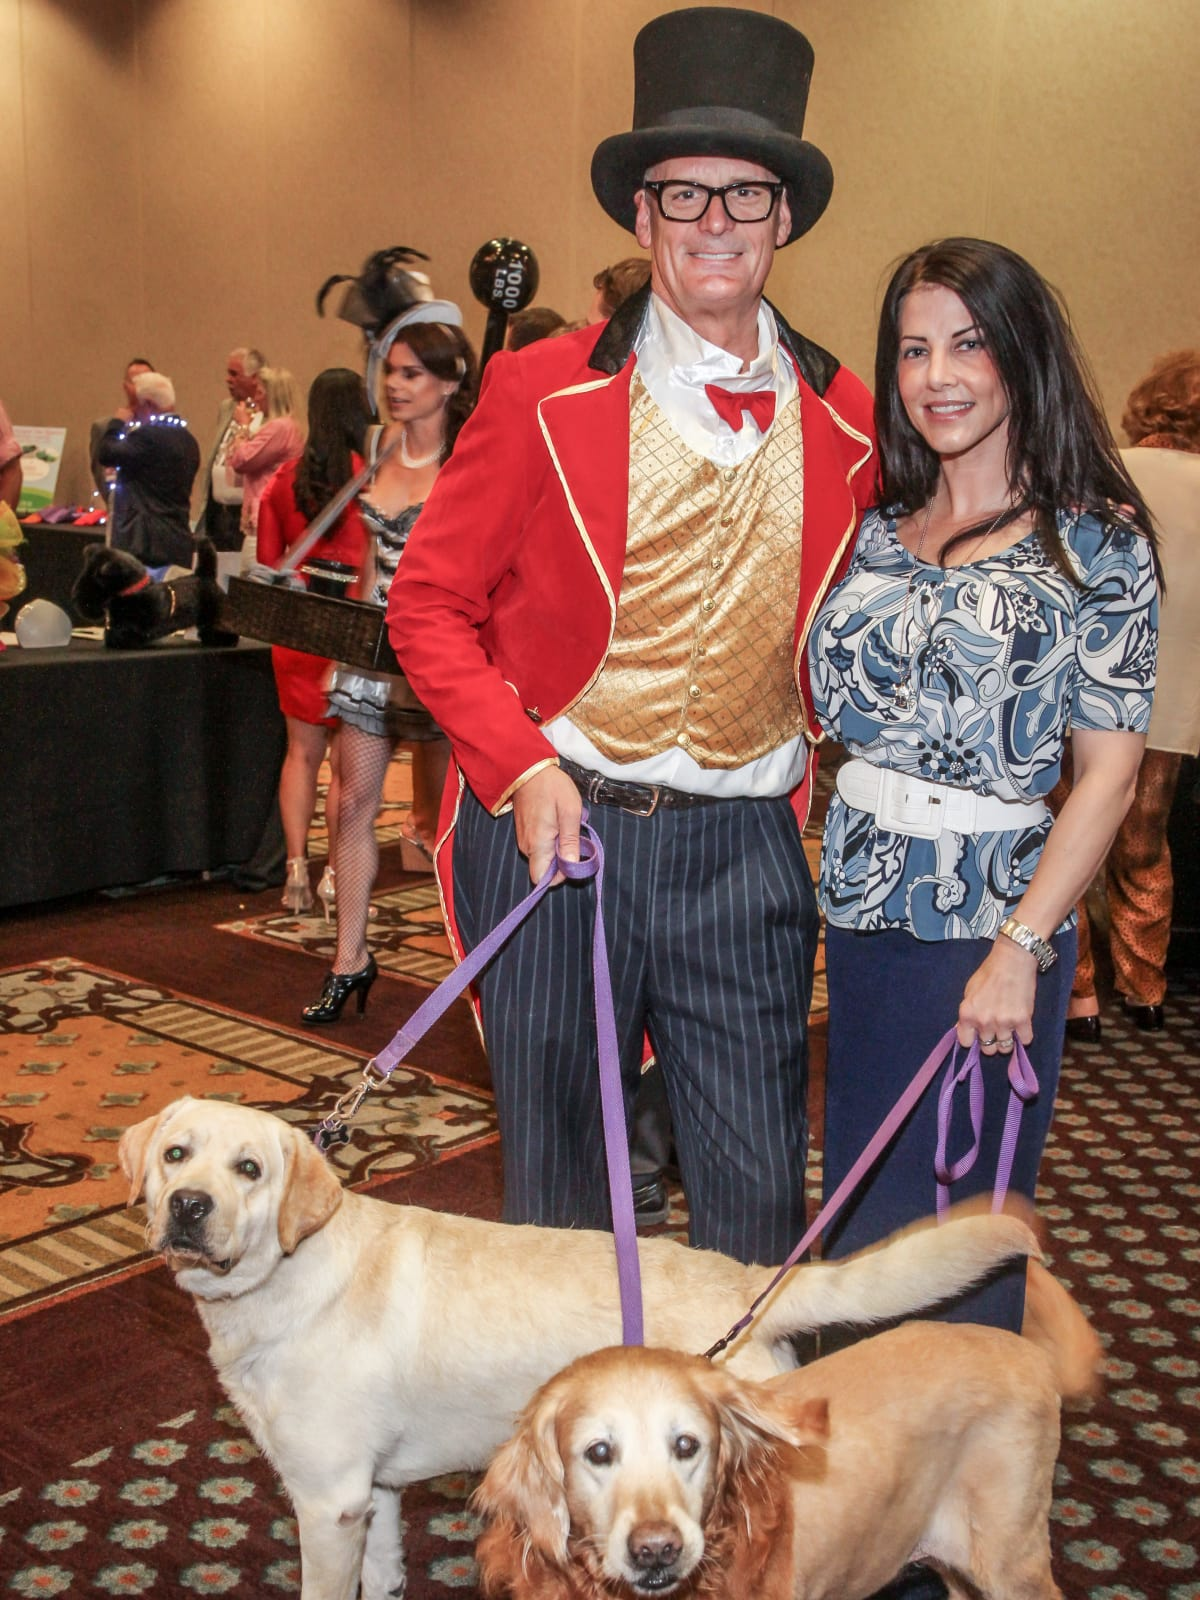 Citizens for Animal Protection 6/16 Michael Hoctor,Bonnie Goodrich